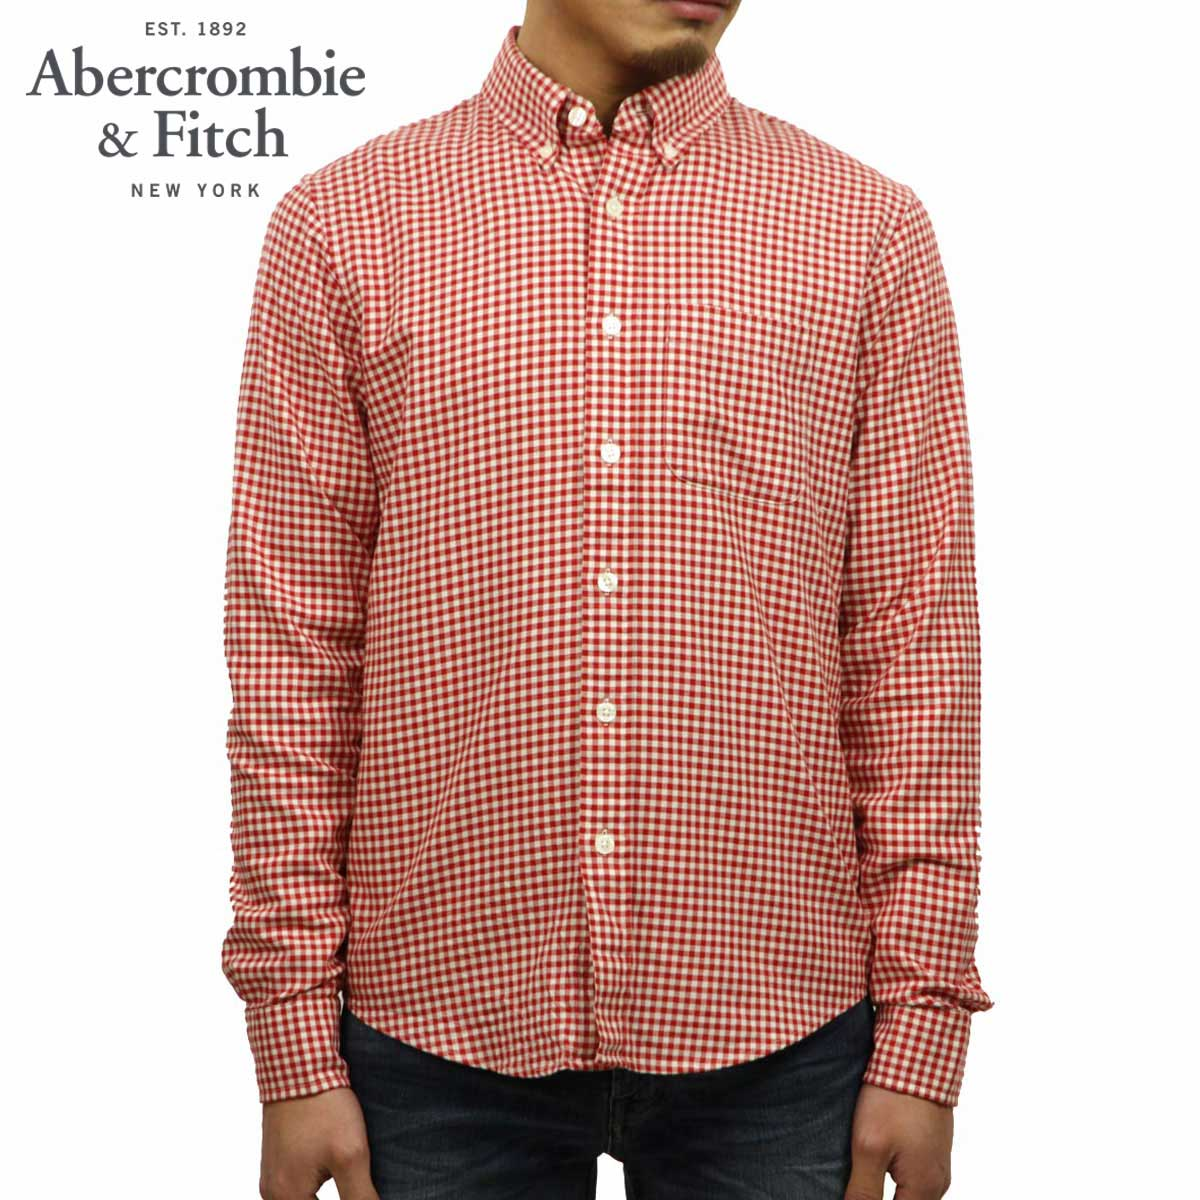 アバクロ Abercrombie&Fitch 正規品 メンズ 長袖シャツ Gingham Herringbone Button-Up Shirt 125-168-2370-508 D00S20